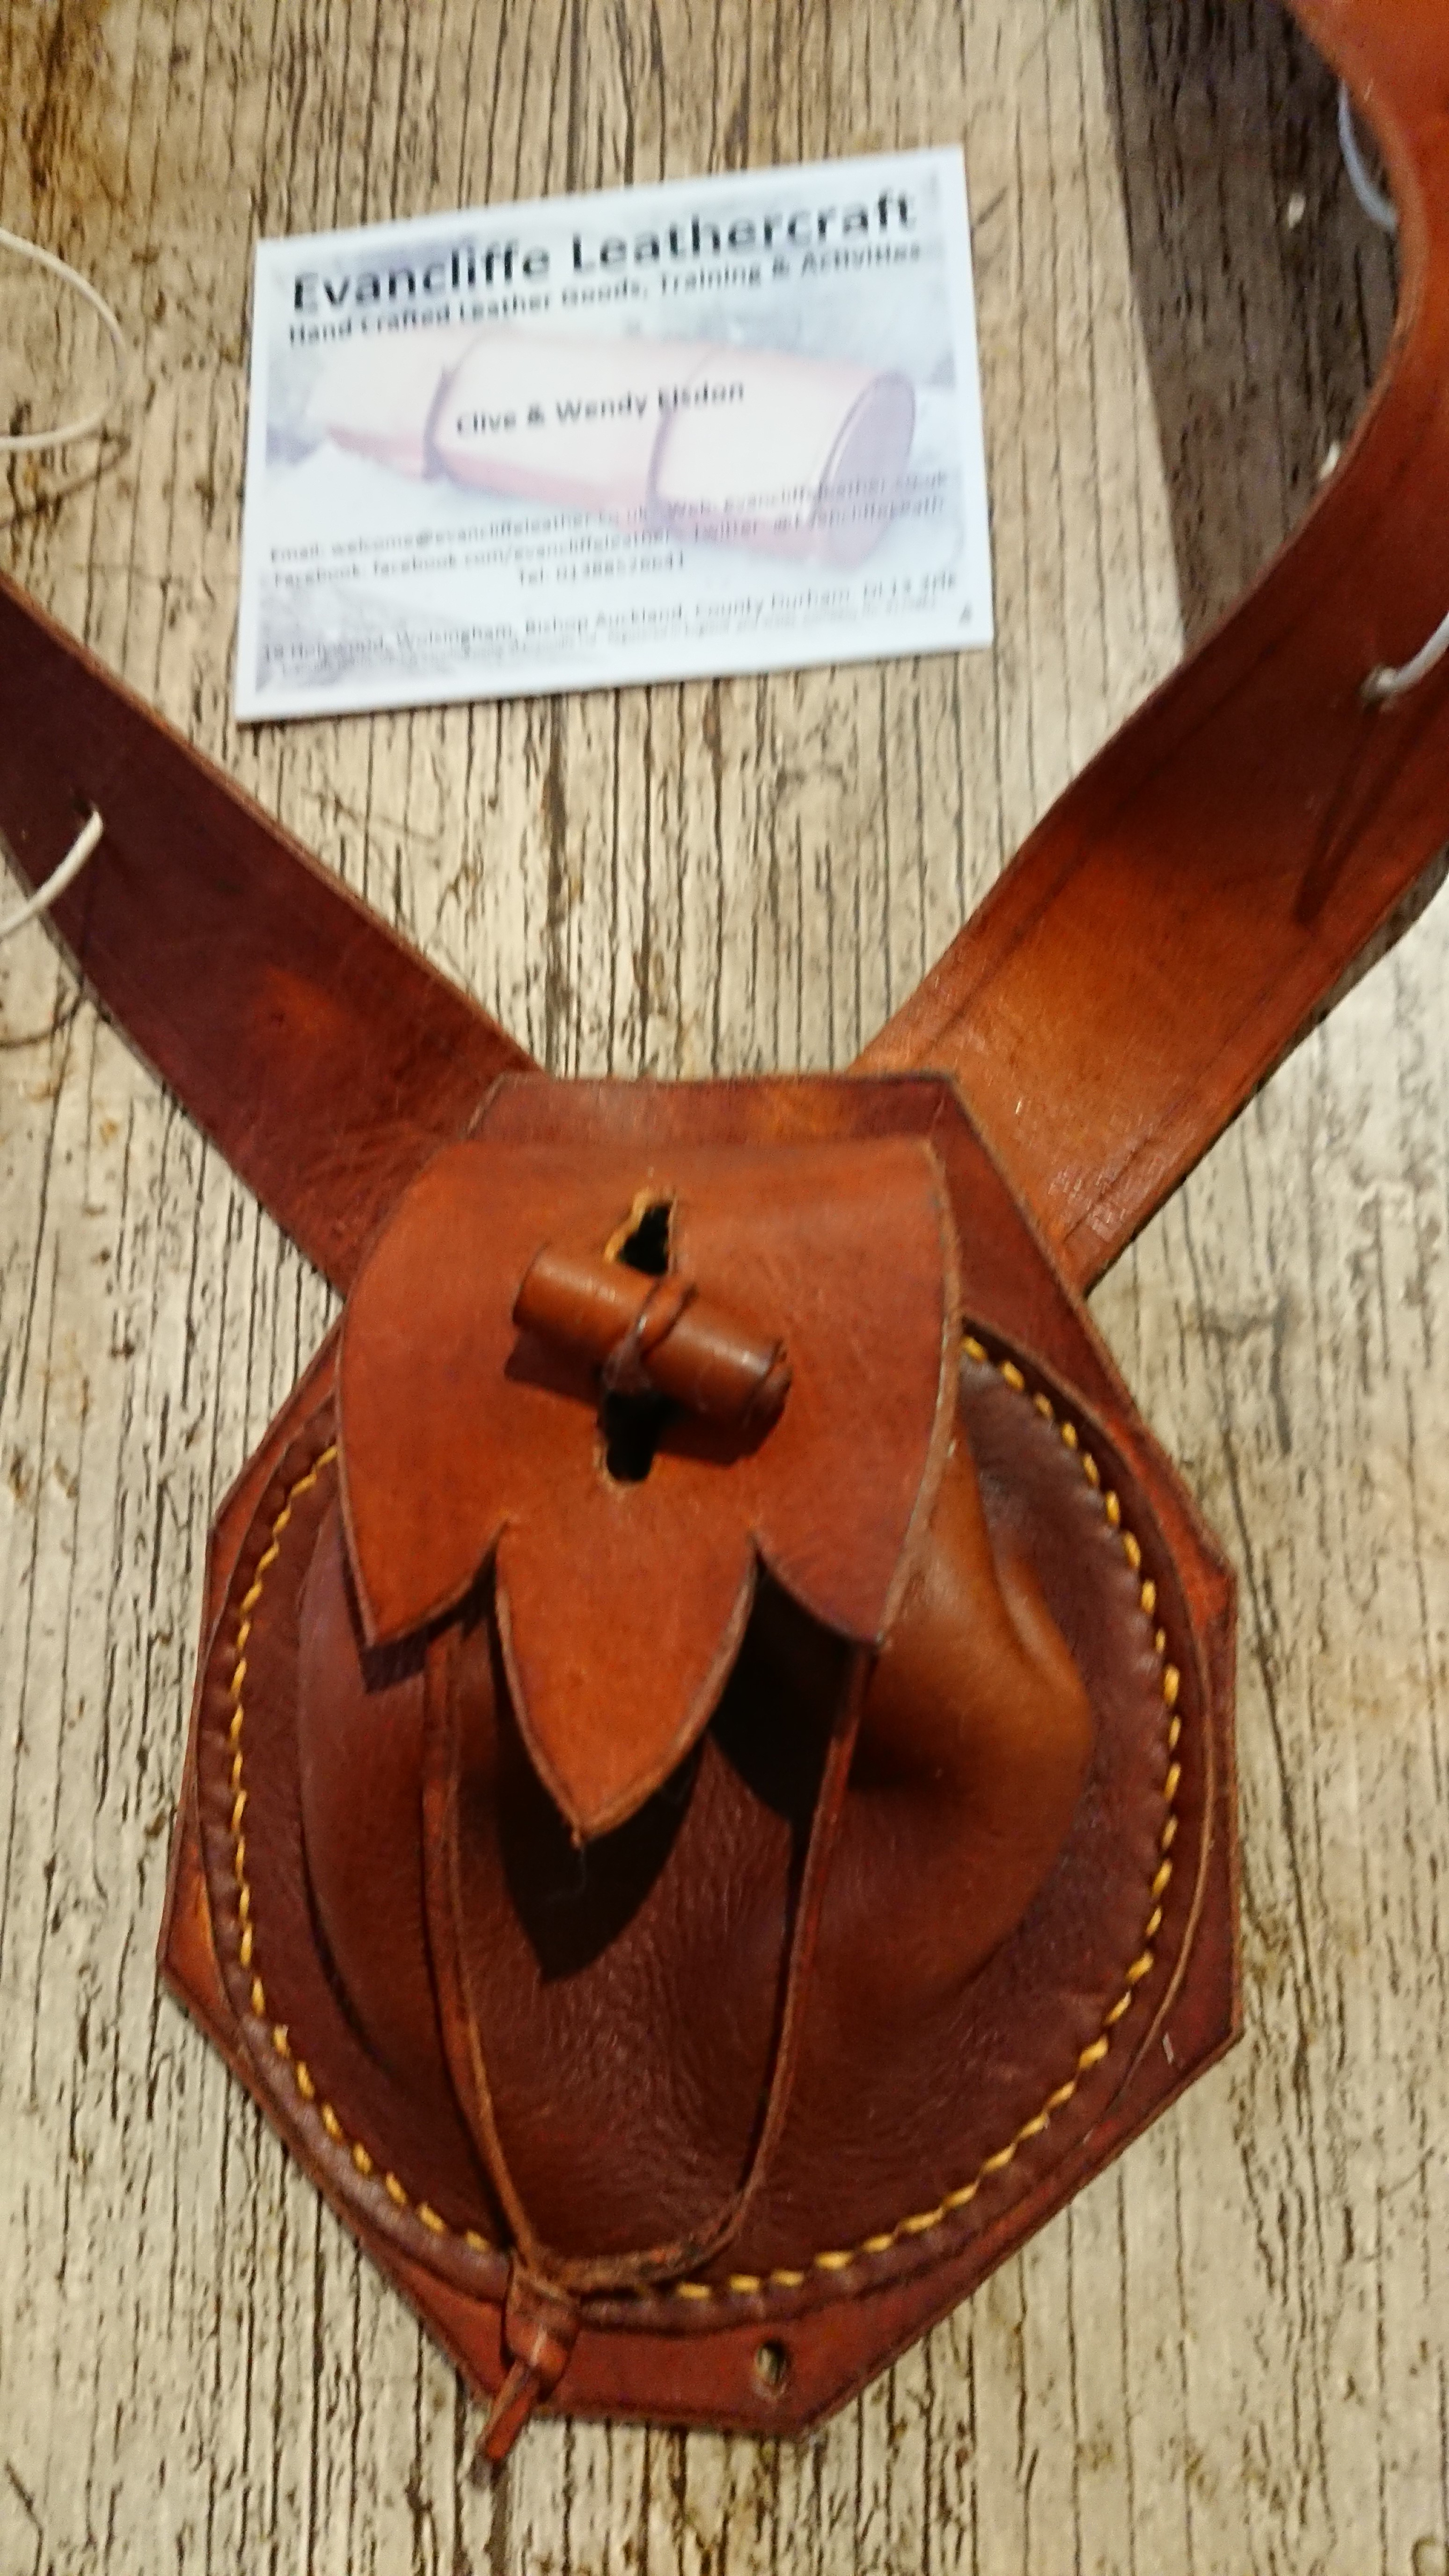 Civil War Musketeer's Bandolier by Evancliffe leathercraft